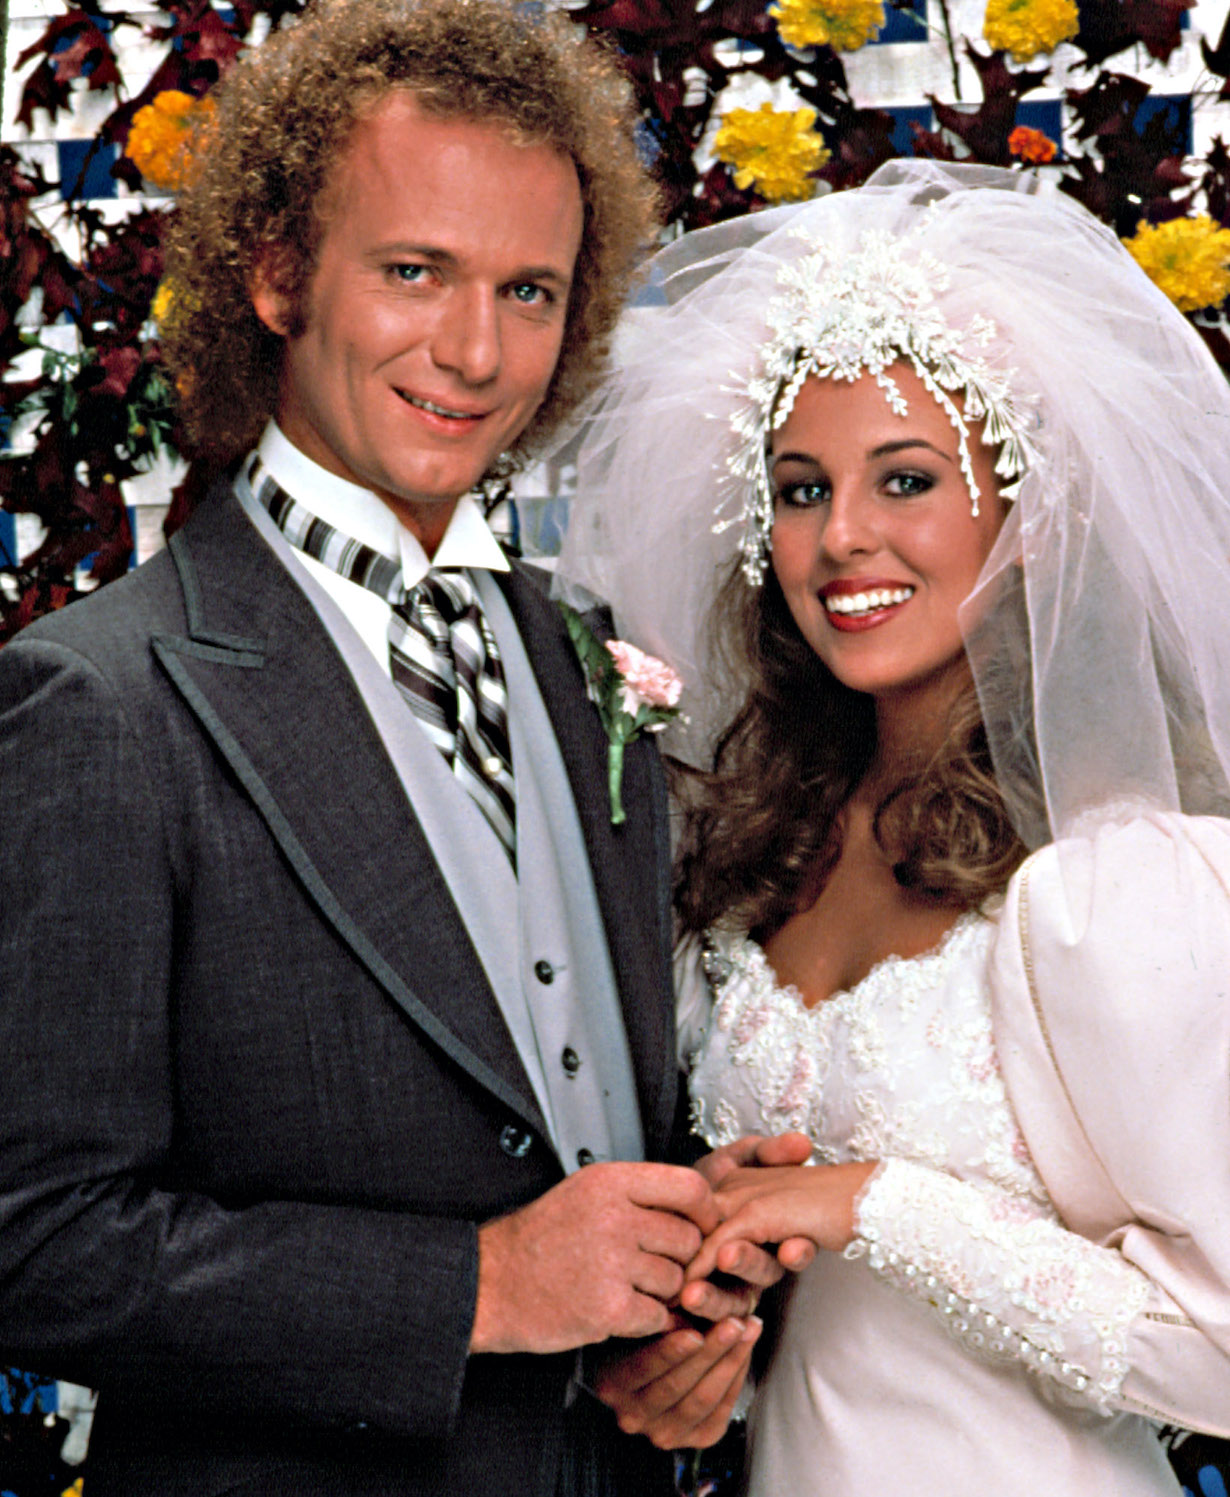 GENERAL HOSPITAL, Anthony Geary, Genie Francis, in the wedding episode, luke laura